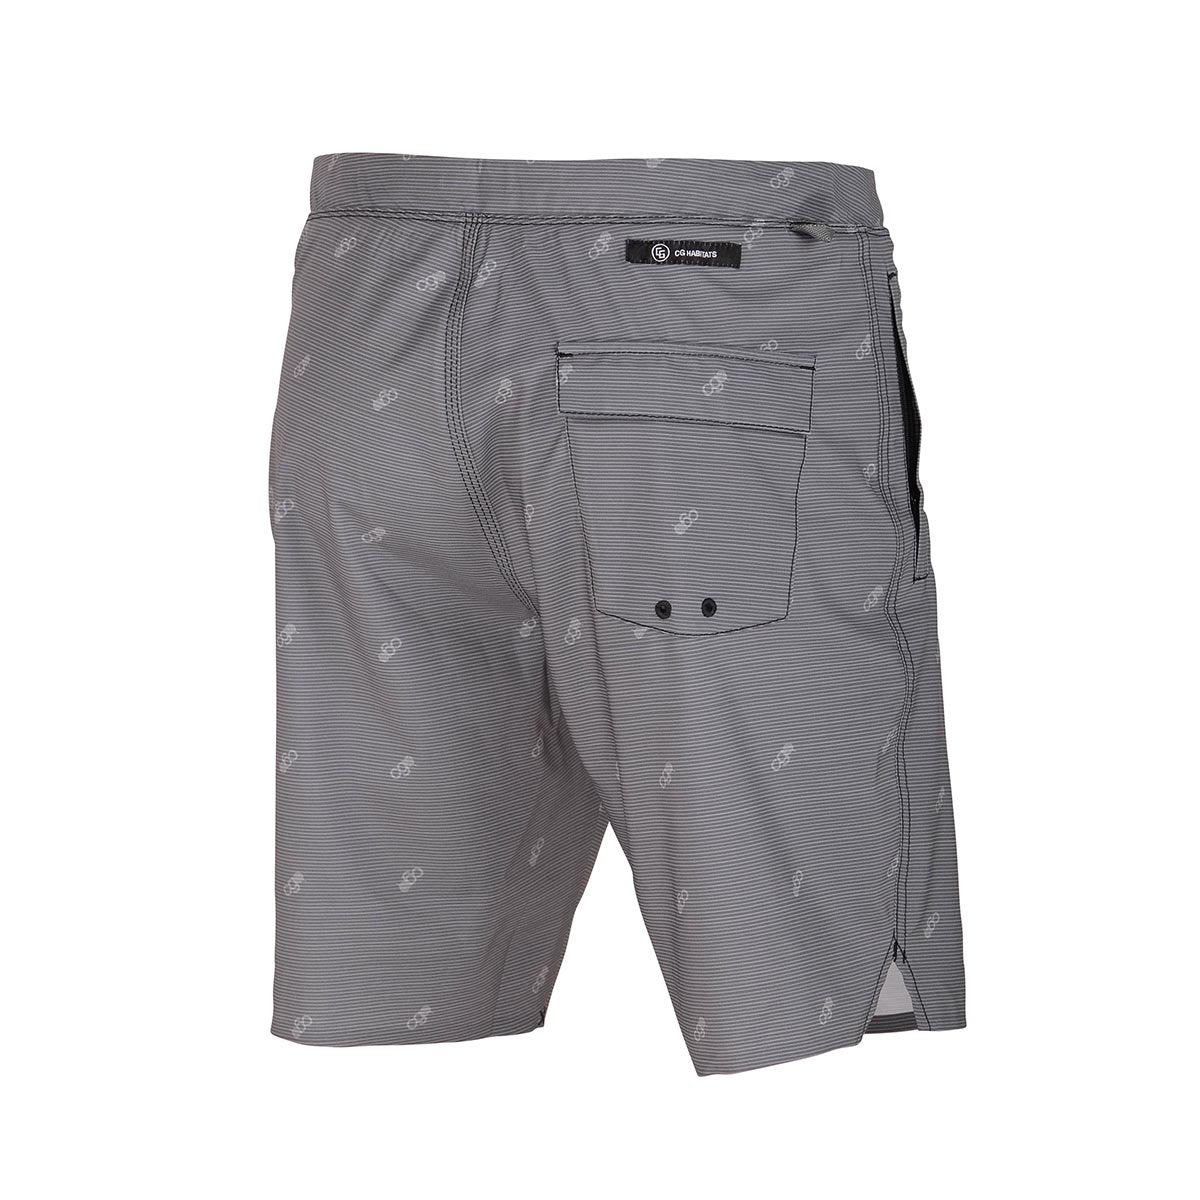 Eco friendly recycled 305 Fit Board Short men